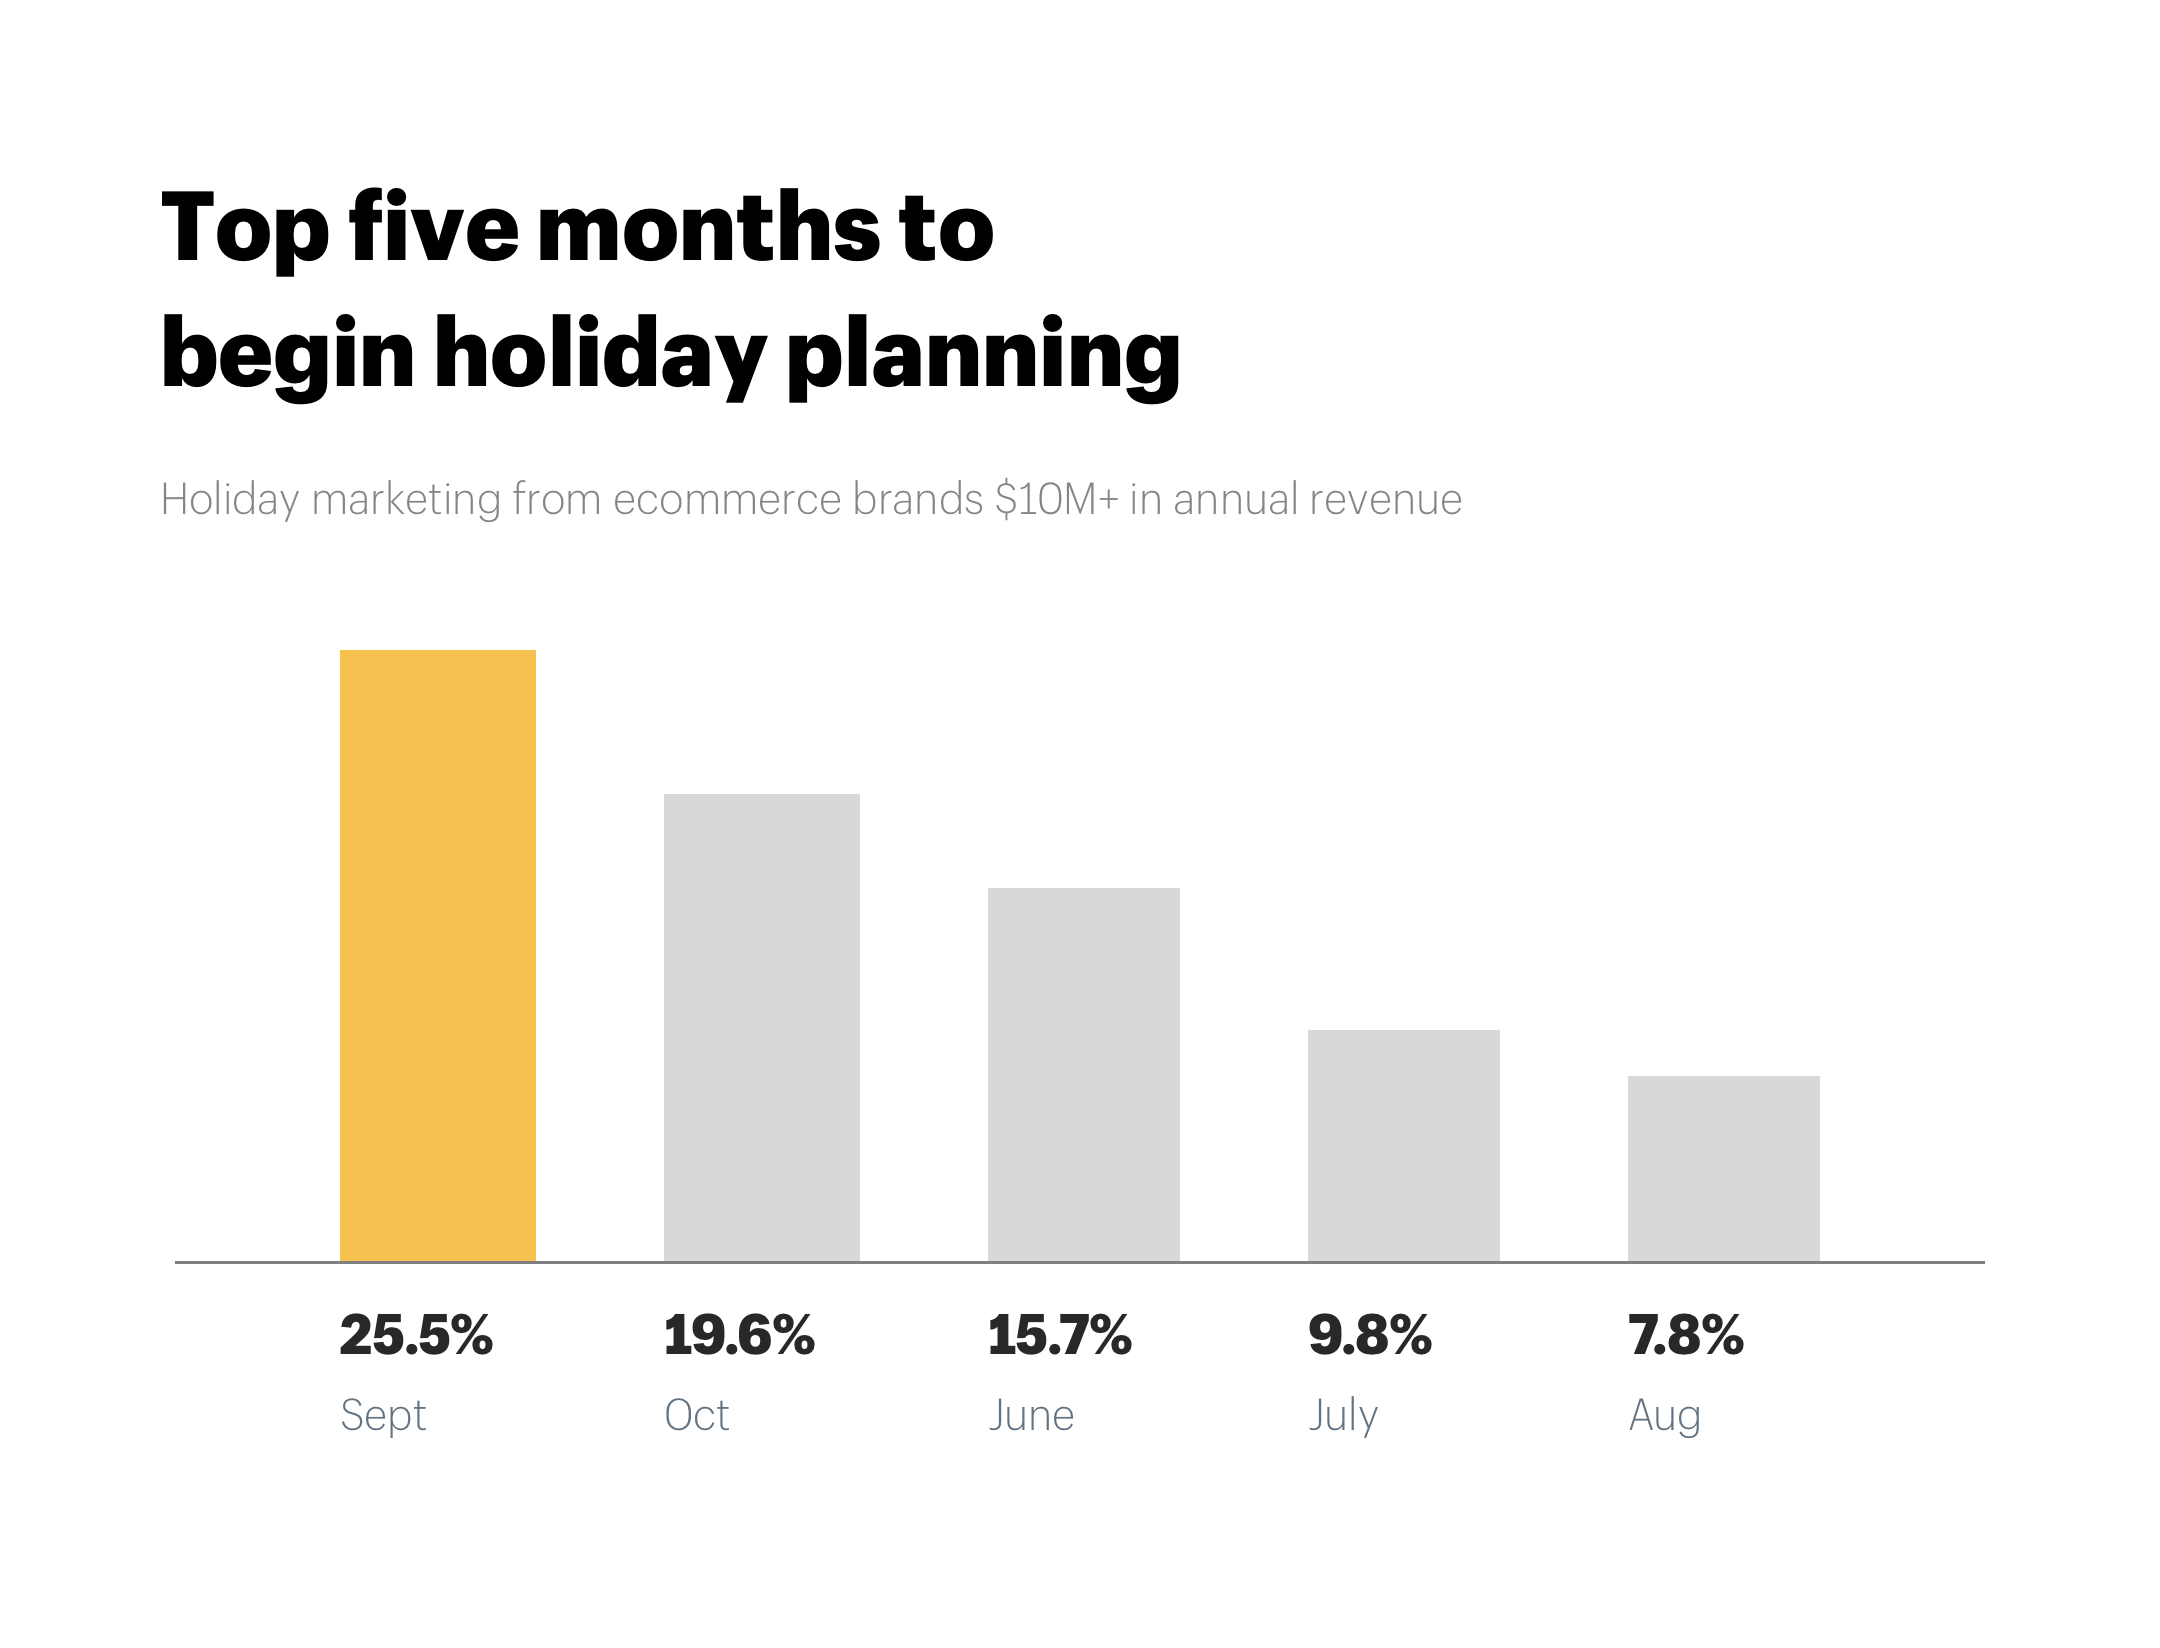 Holiday marketing ecommerce top five months to begin holiday planning